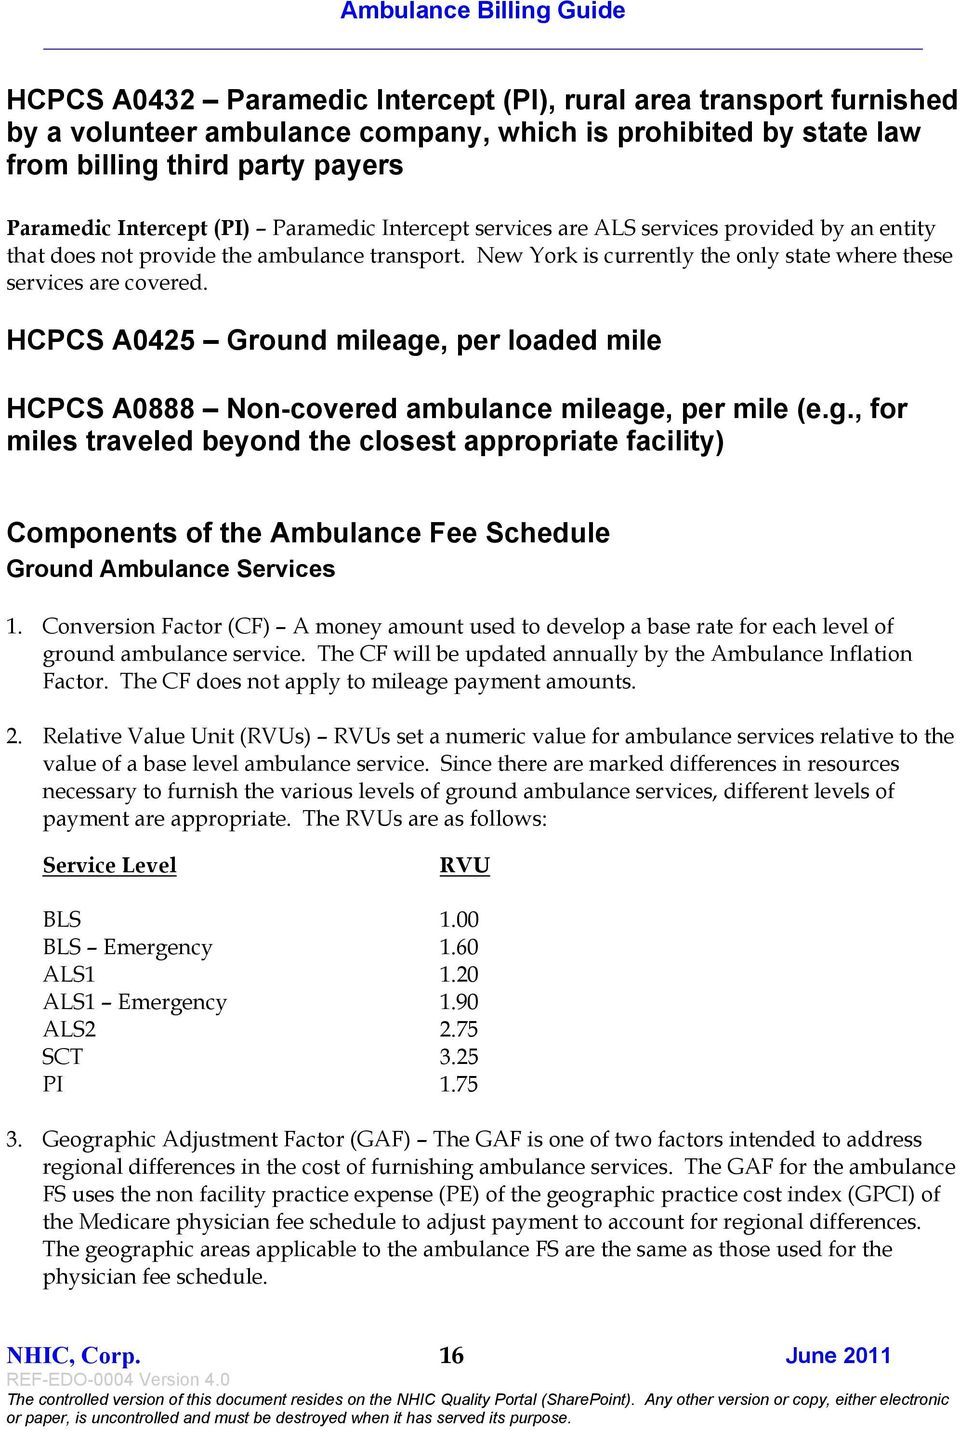 HCPCS A0425 Ground mileage, per loaded mile HCPCS A0888 Non-covered ambulance mileage, per mile (e.g., for miles traveled beyond the closest appropriate facility) Components of the Ambulance Fee Schedule Ground Ambulance Services 1.